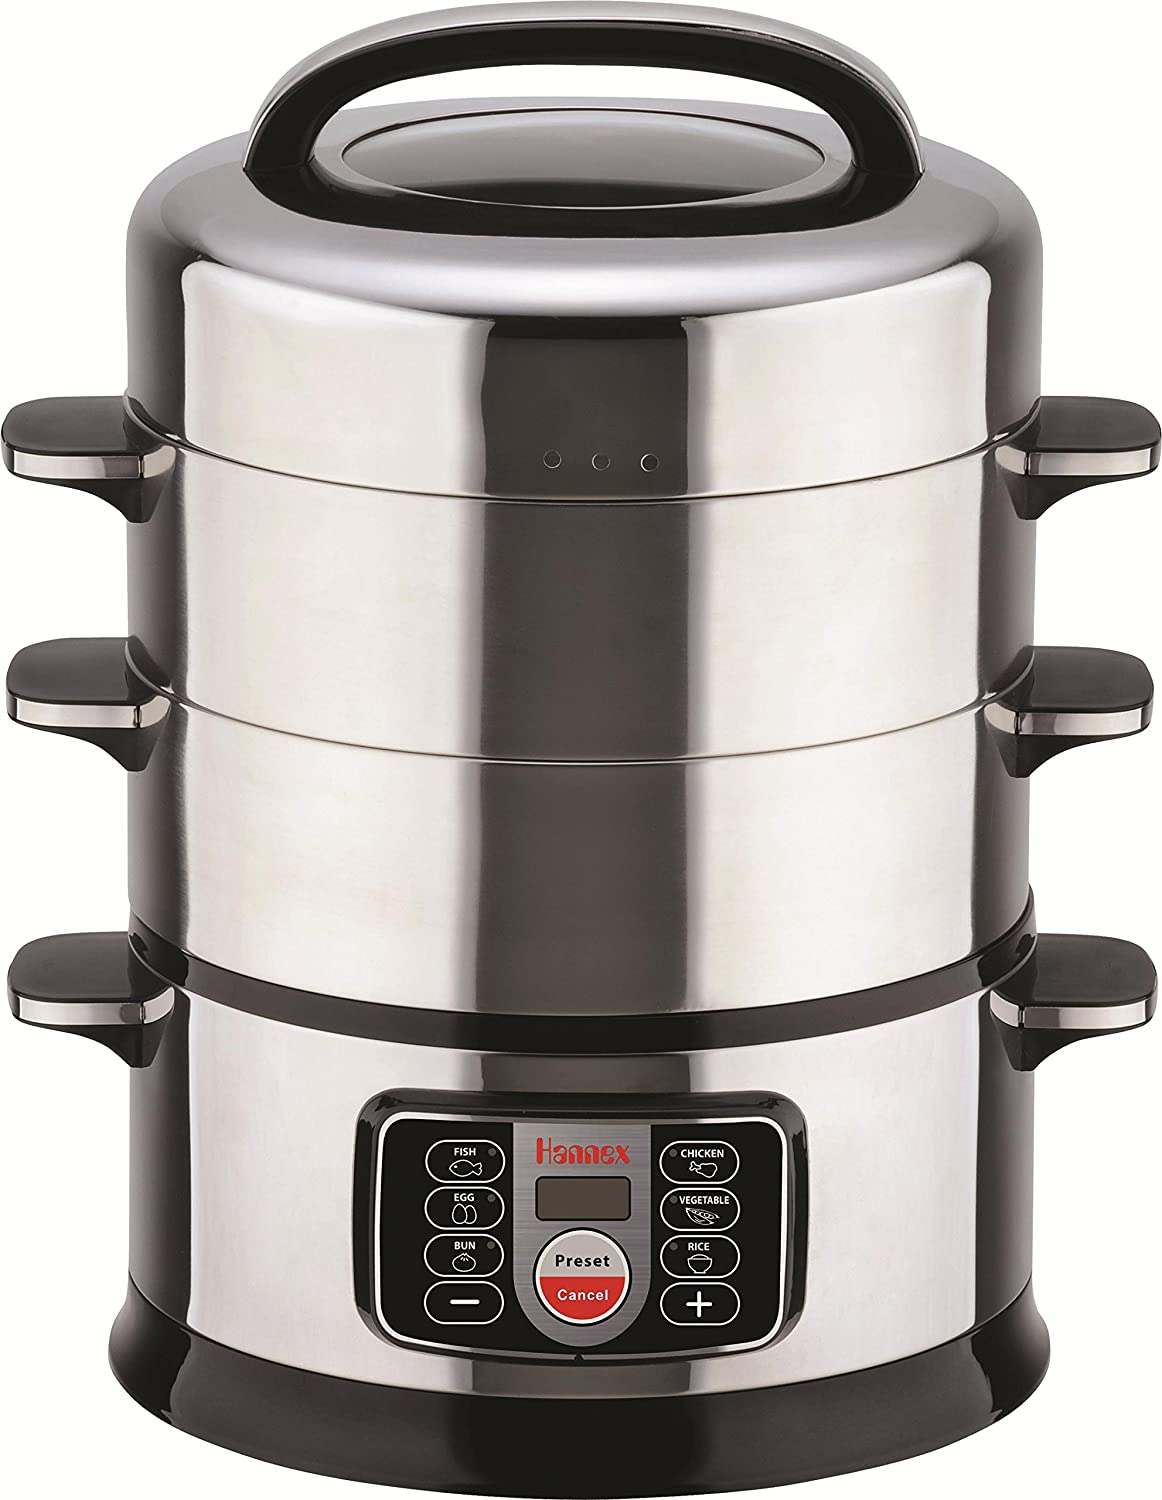 Hannex Electric Food Steamer, 4.3 L, Silver